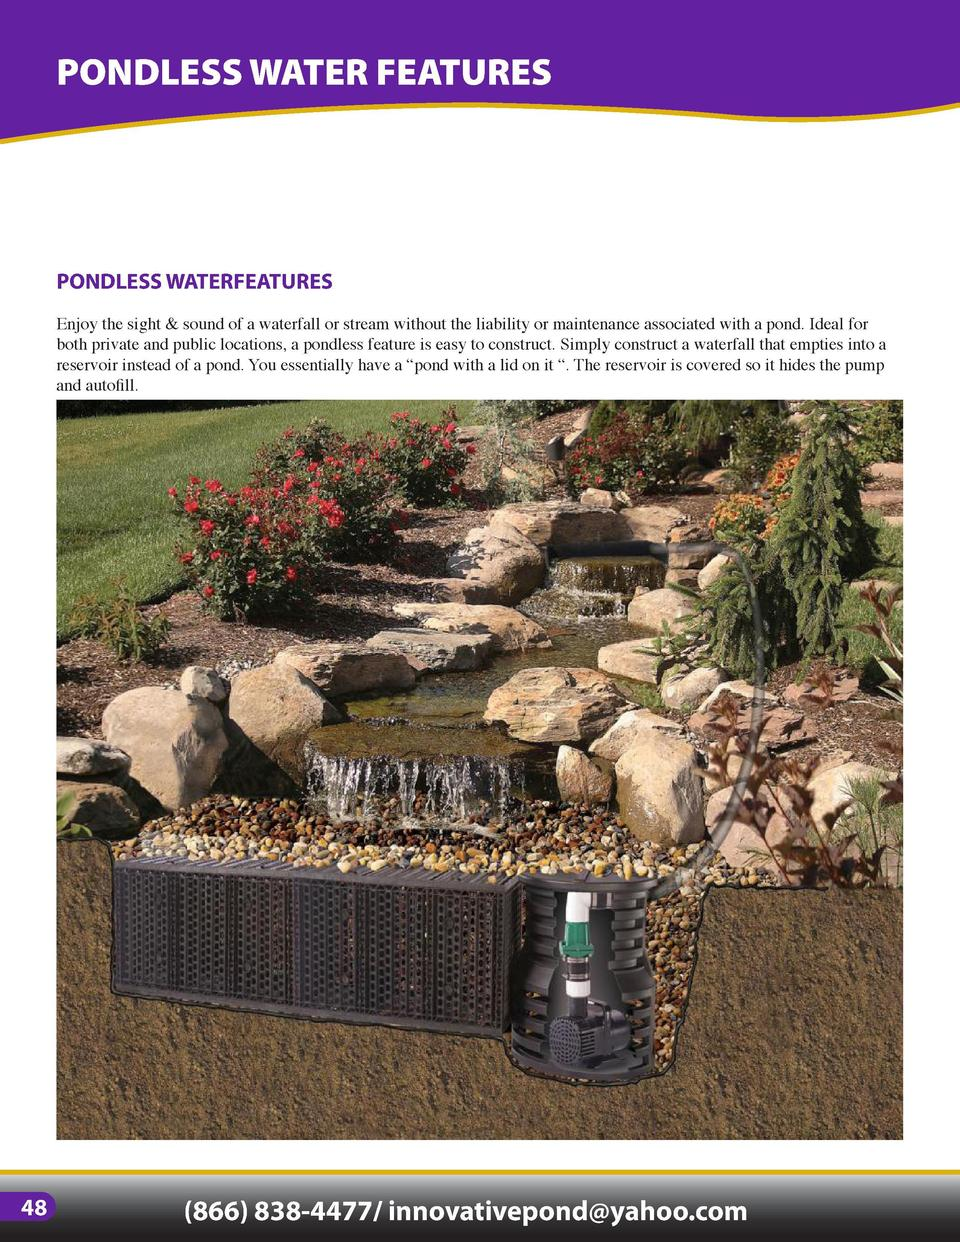 PONDLESS WATER FEATURES  PONDLESS WATERFEATURES Enjoy the sight   sound of a waterfall or stream without the liability or ...